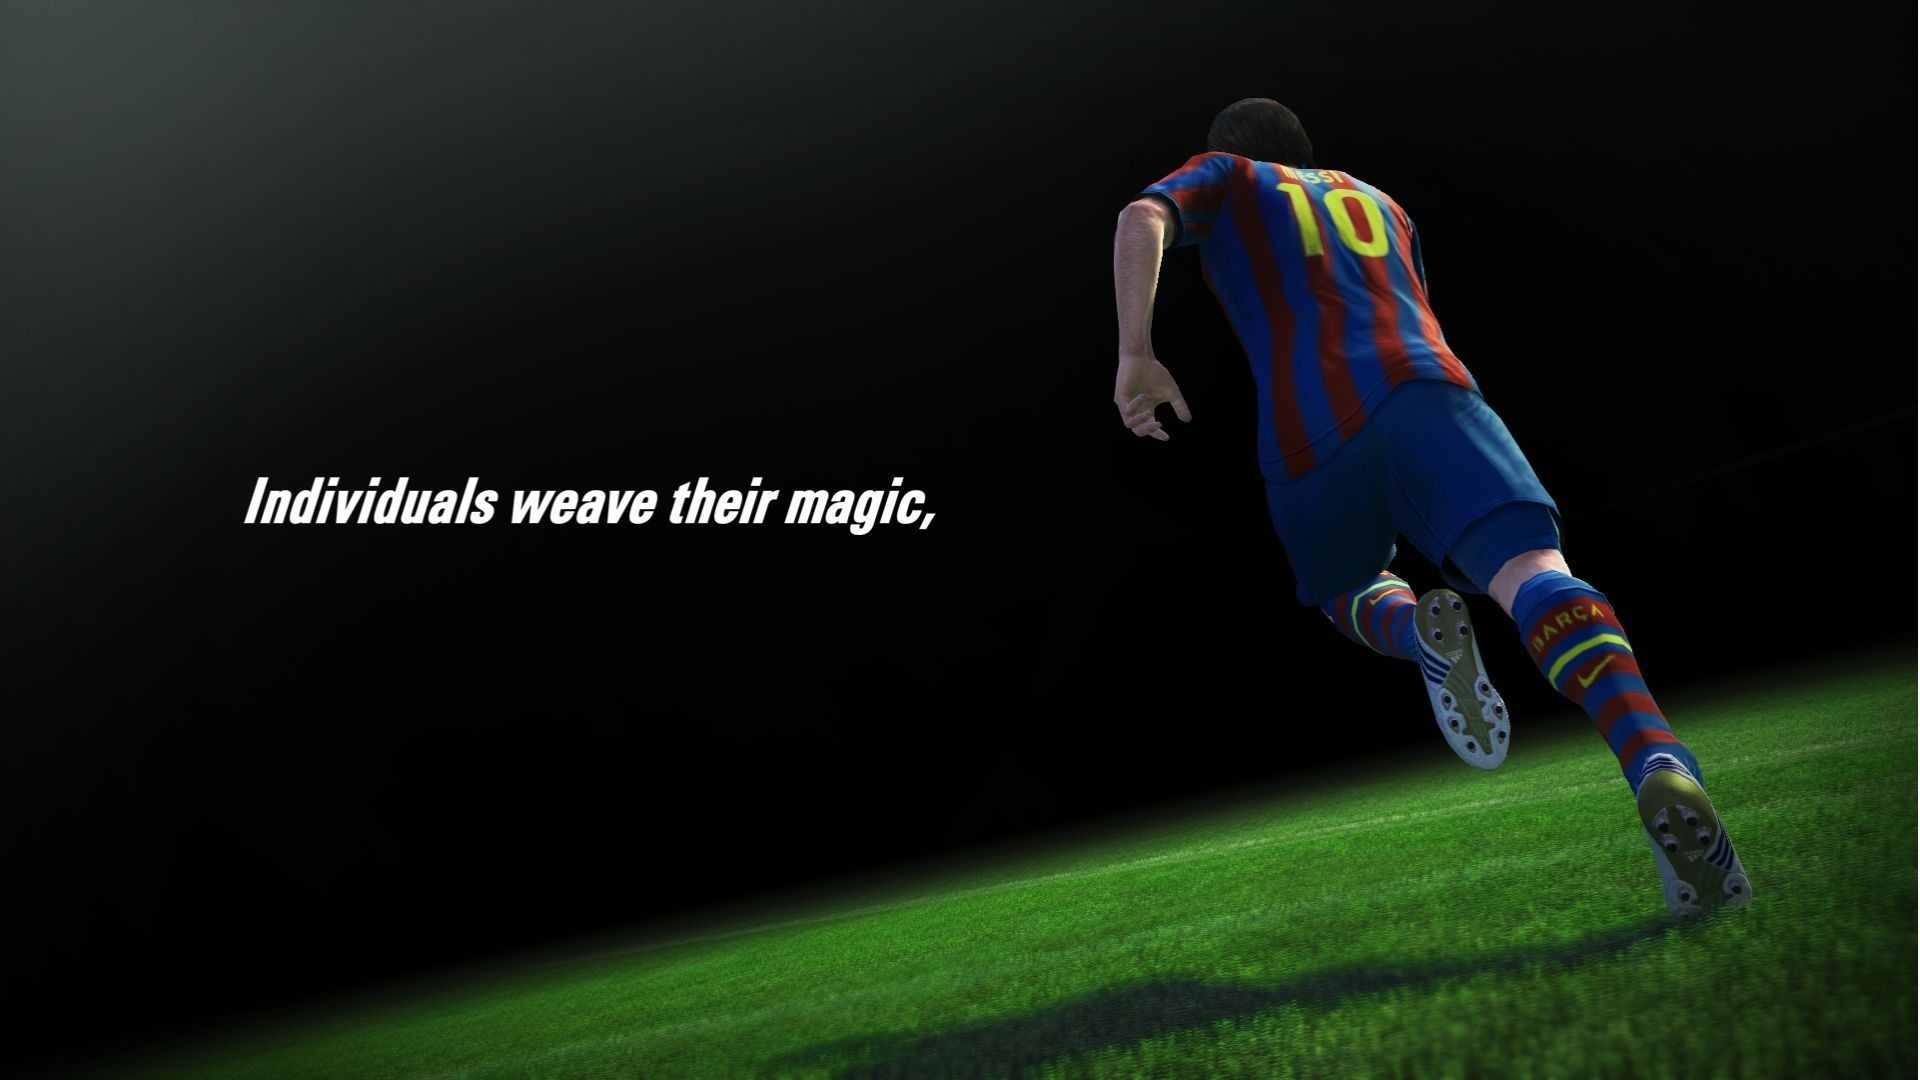 Soccer HD Wallpapers 1920x1080